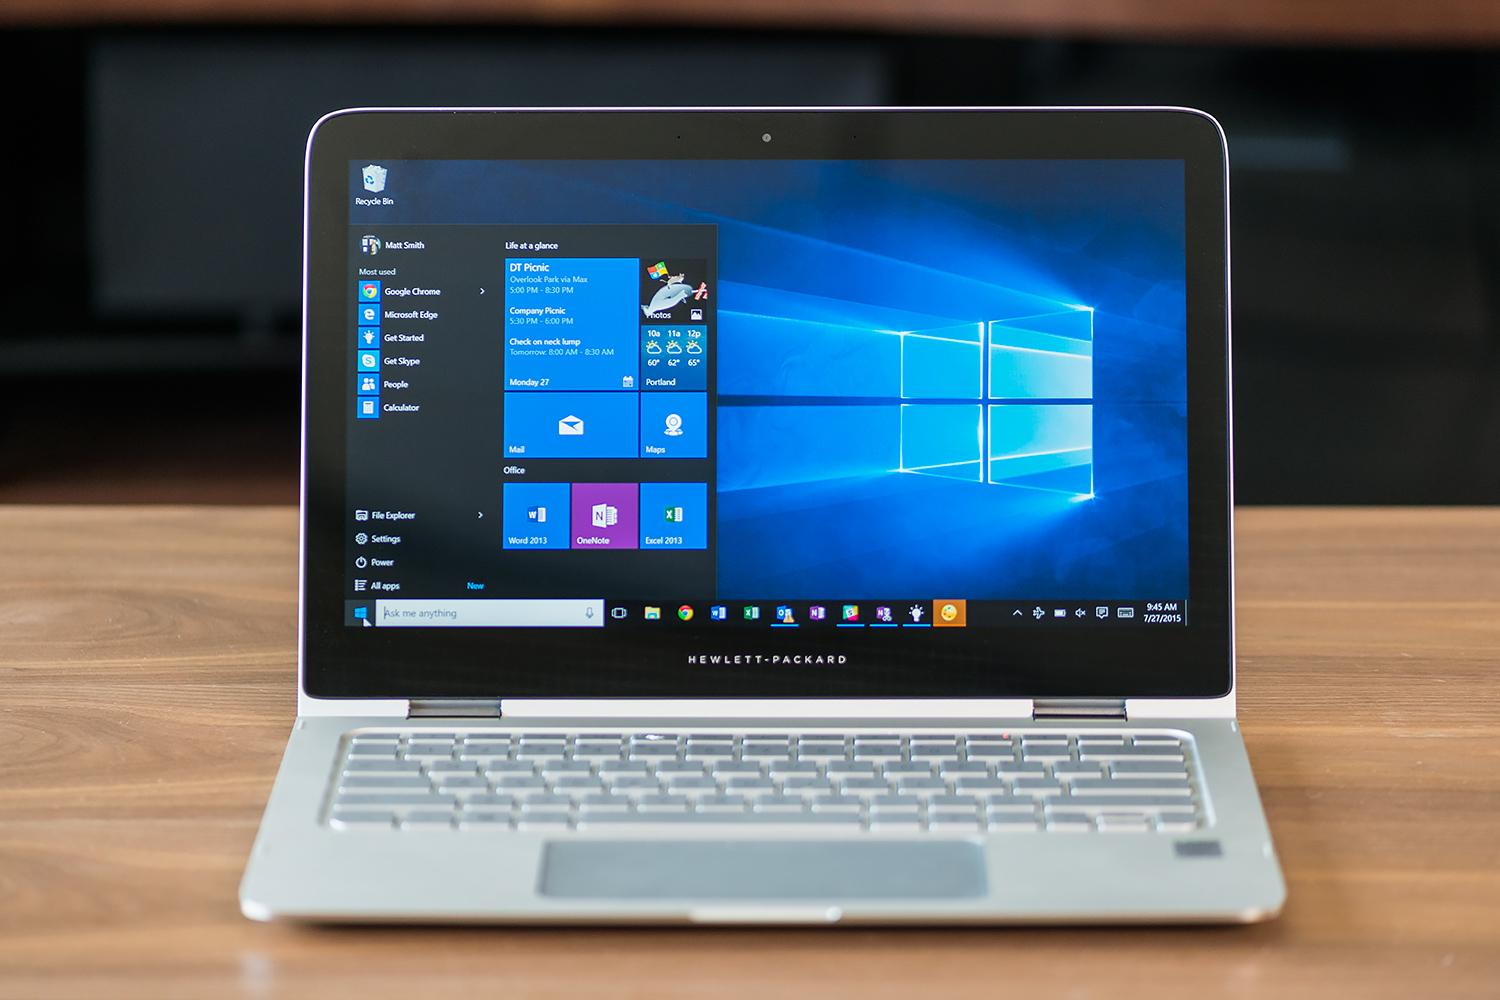 How To Downgrade From Windows 10 To Windows 8.1, 8 or 7 | Digital ...